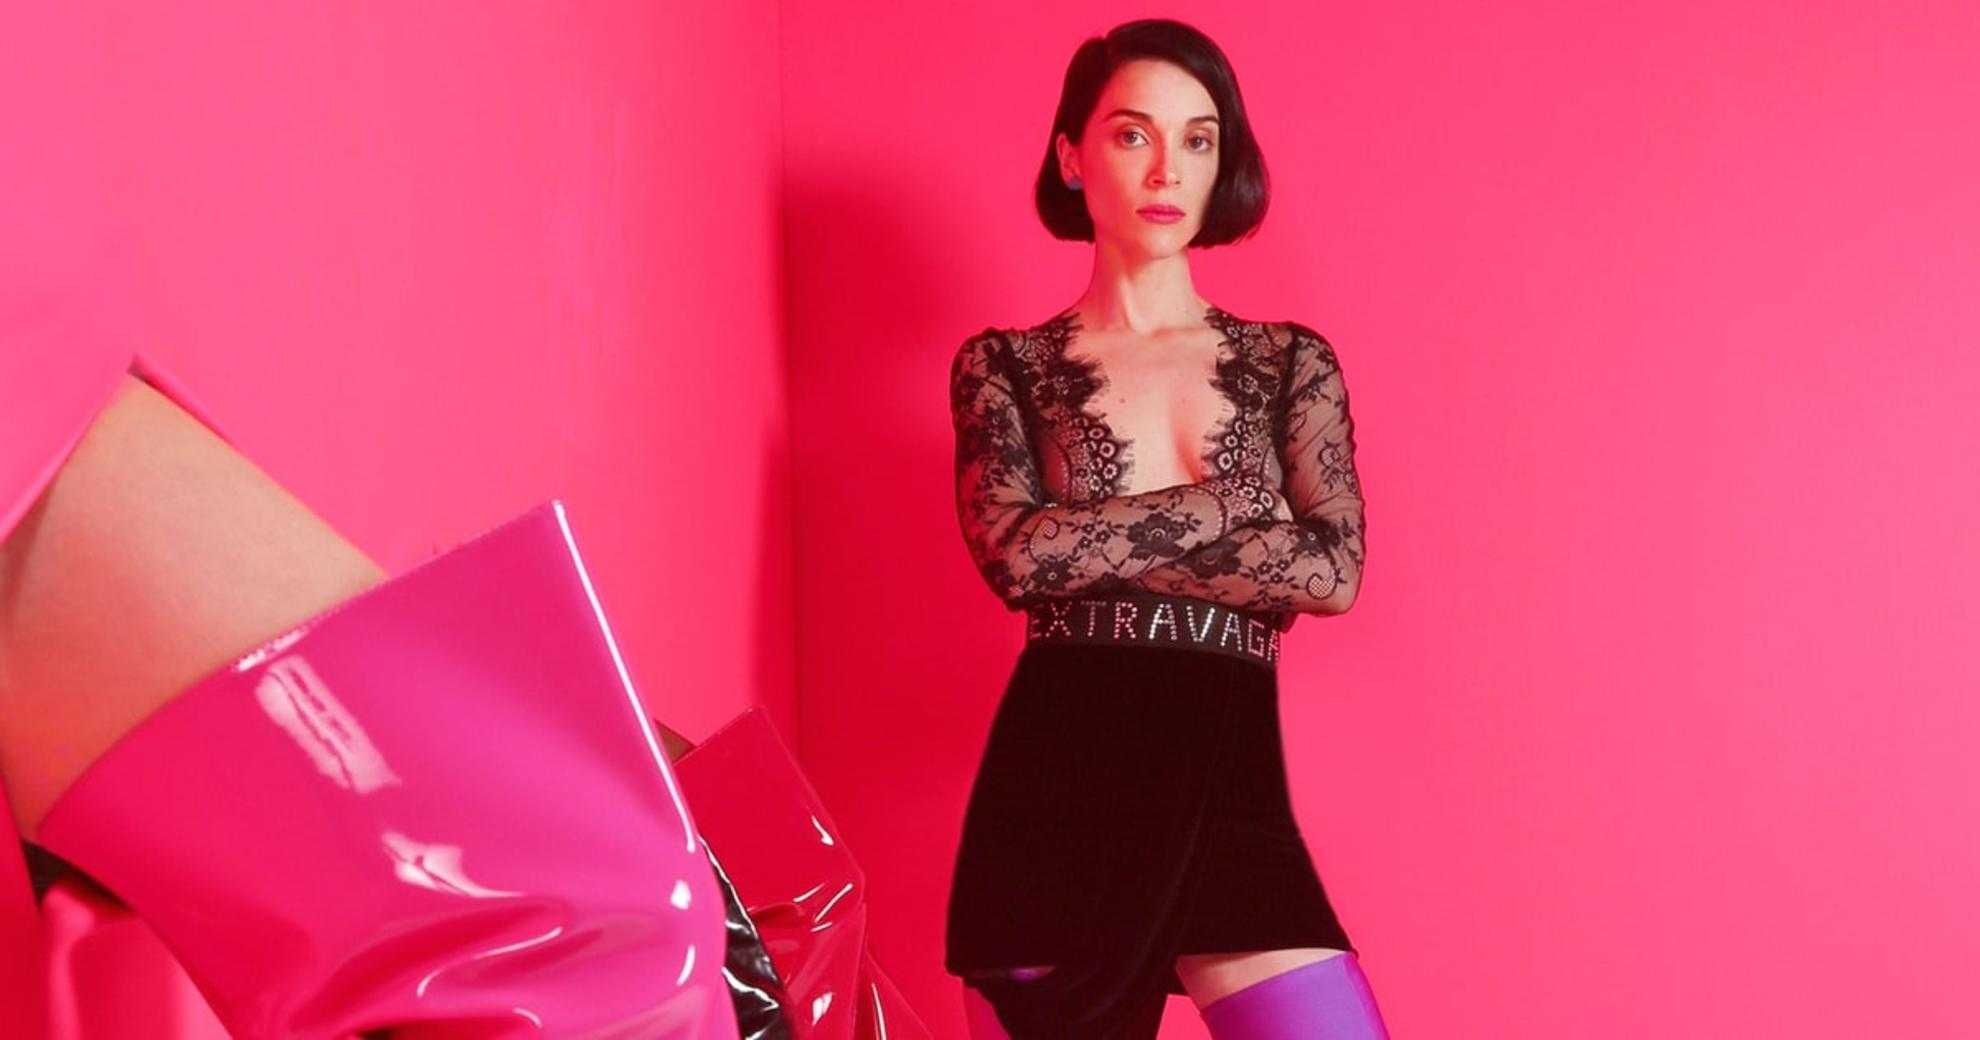 st-vincent-new-songs